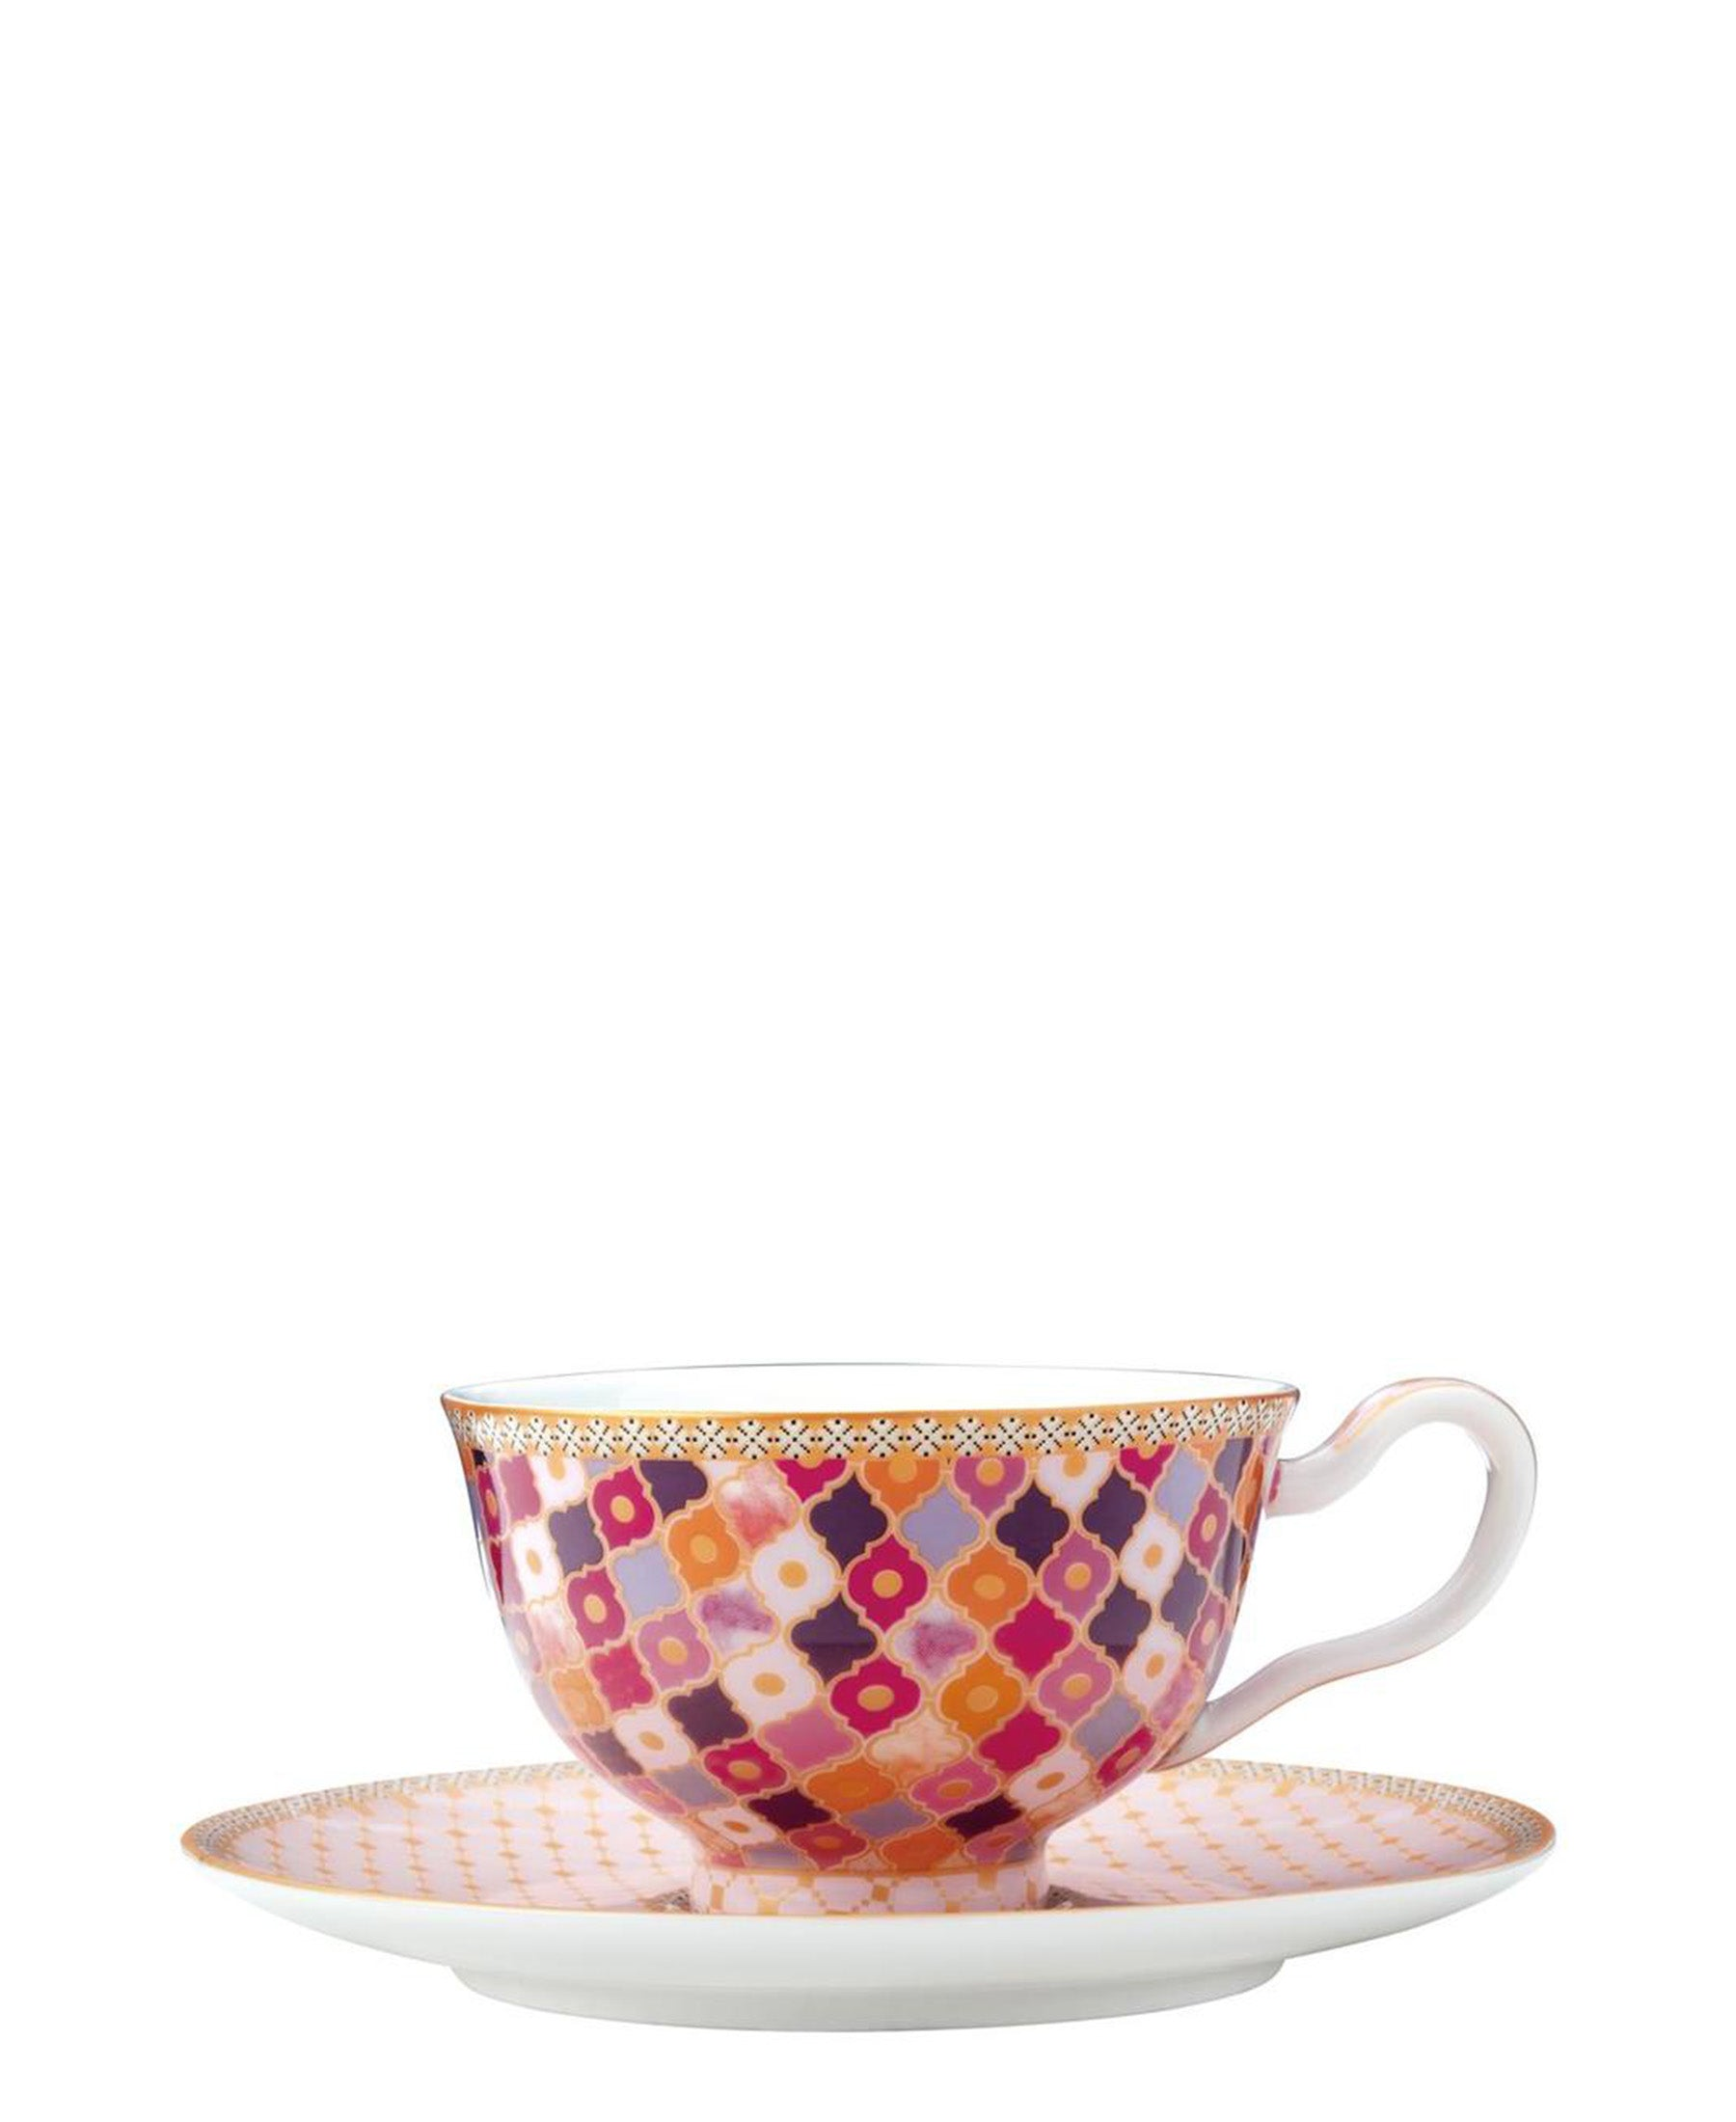 Maxwell & Williams Teas & C's Kasbah Set - Pink